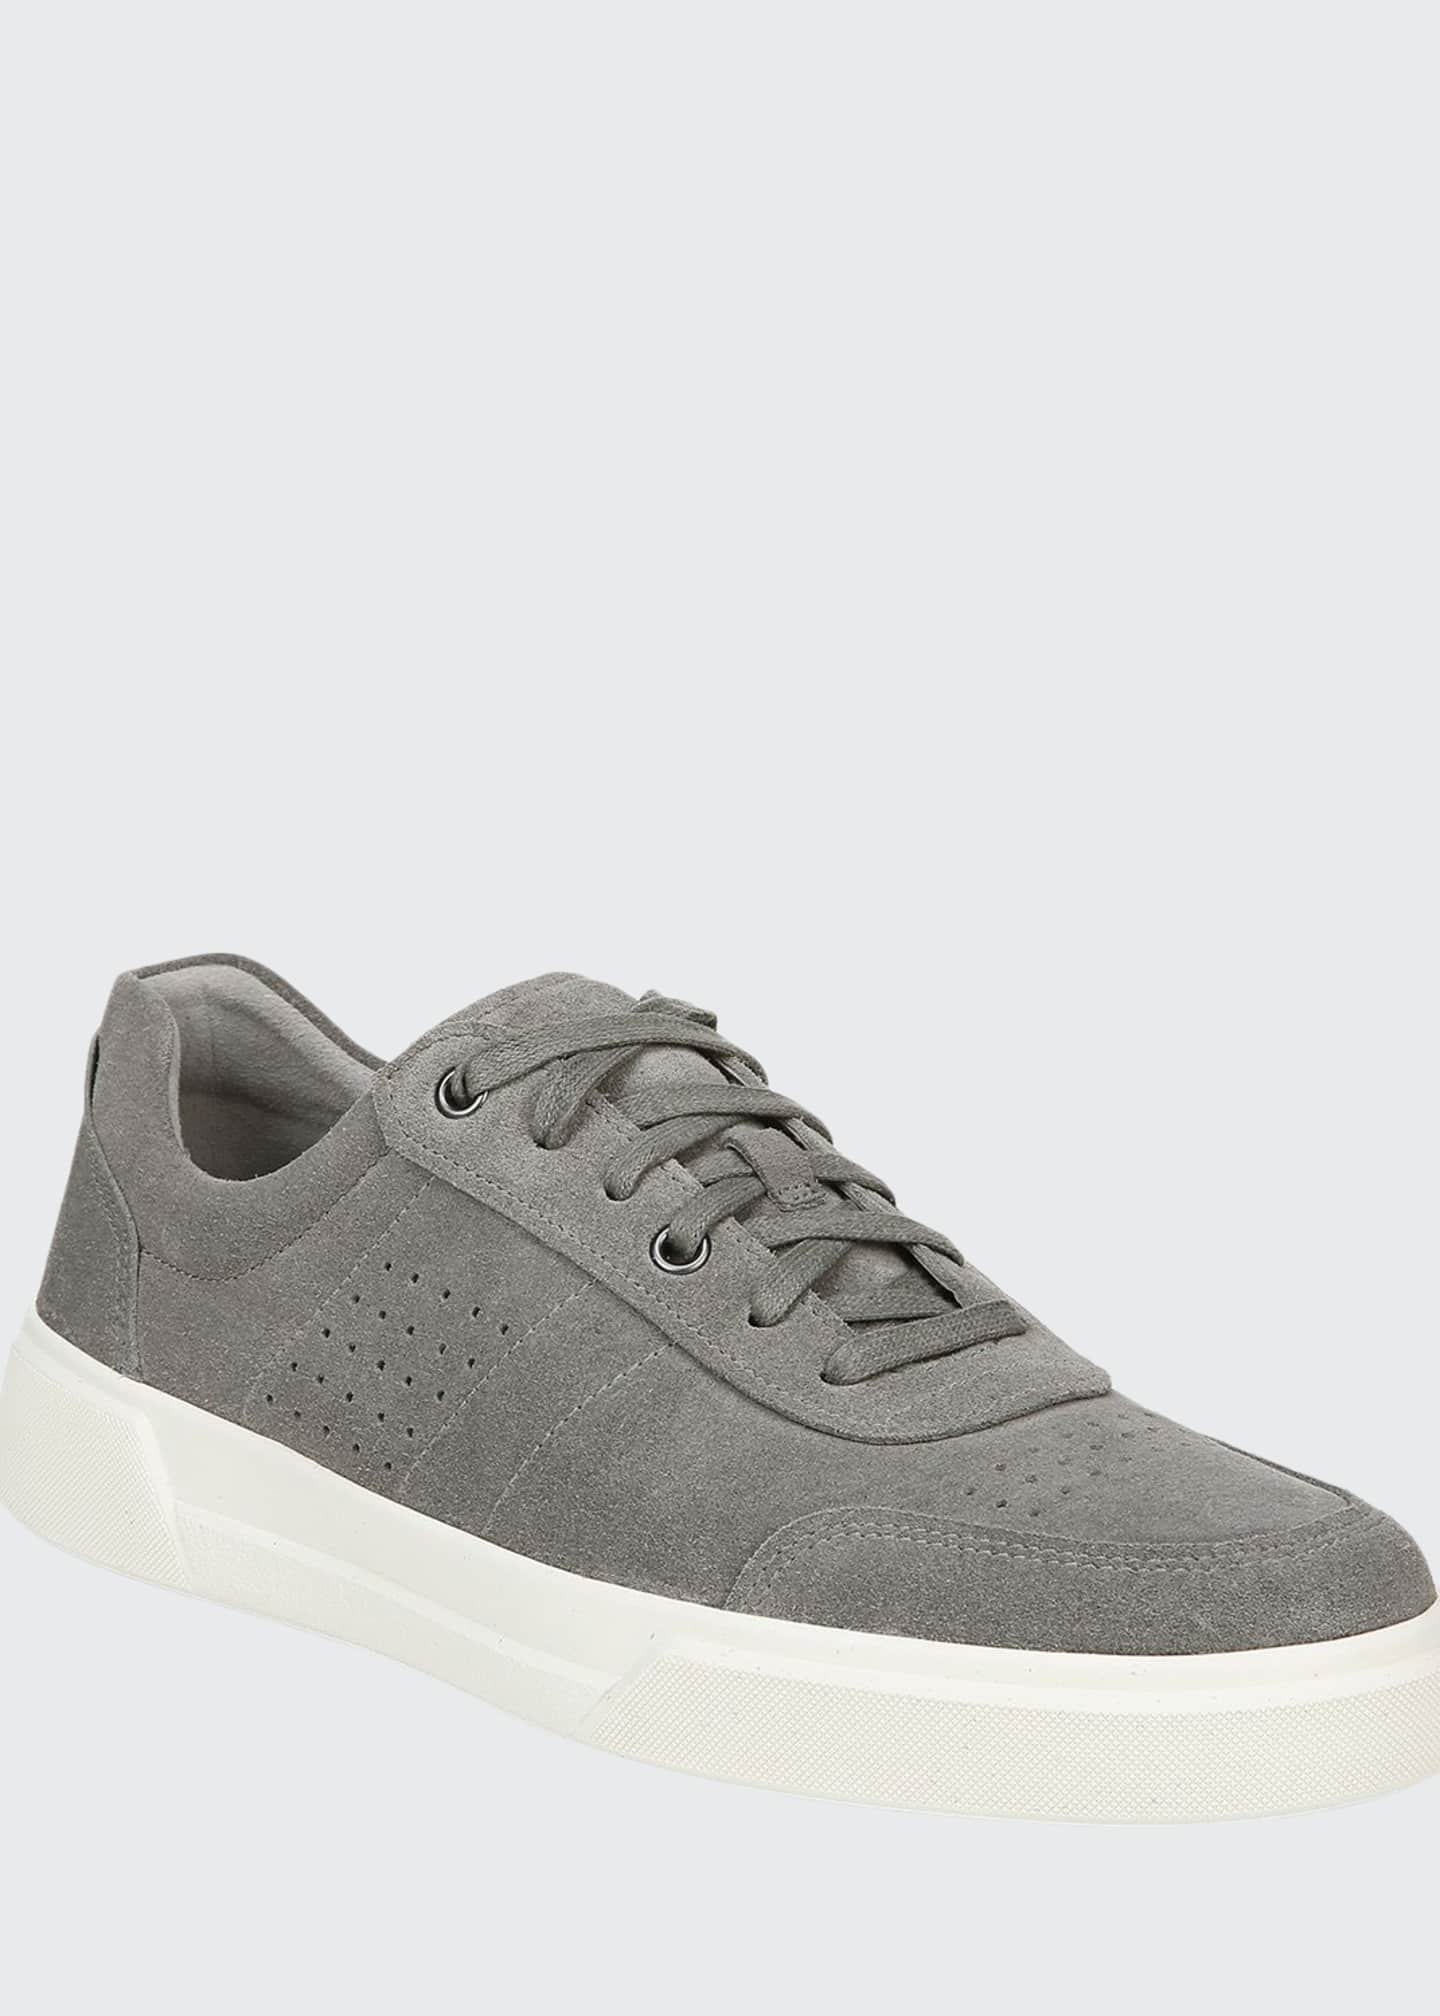 Image 1 of 5: Men's Barnett Perforated Suede Low-Top Sneakers